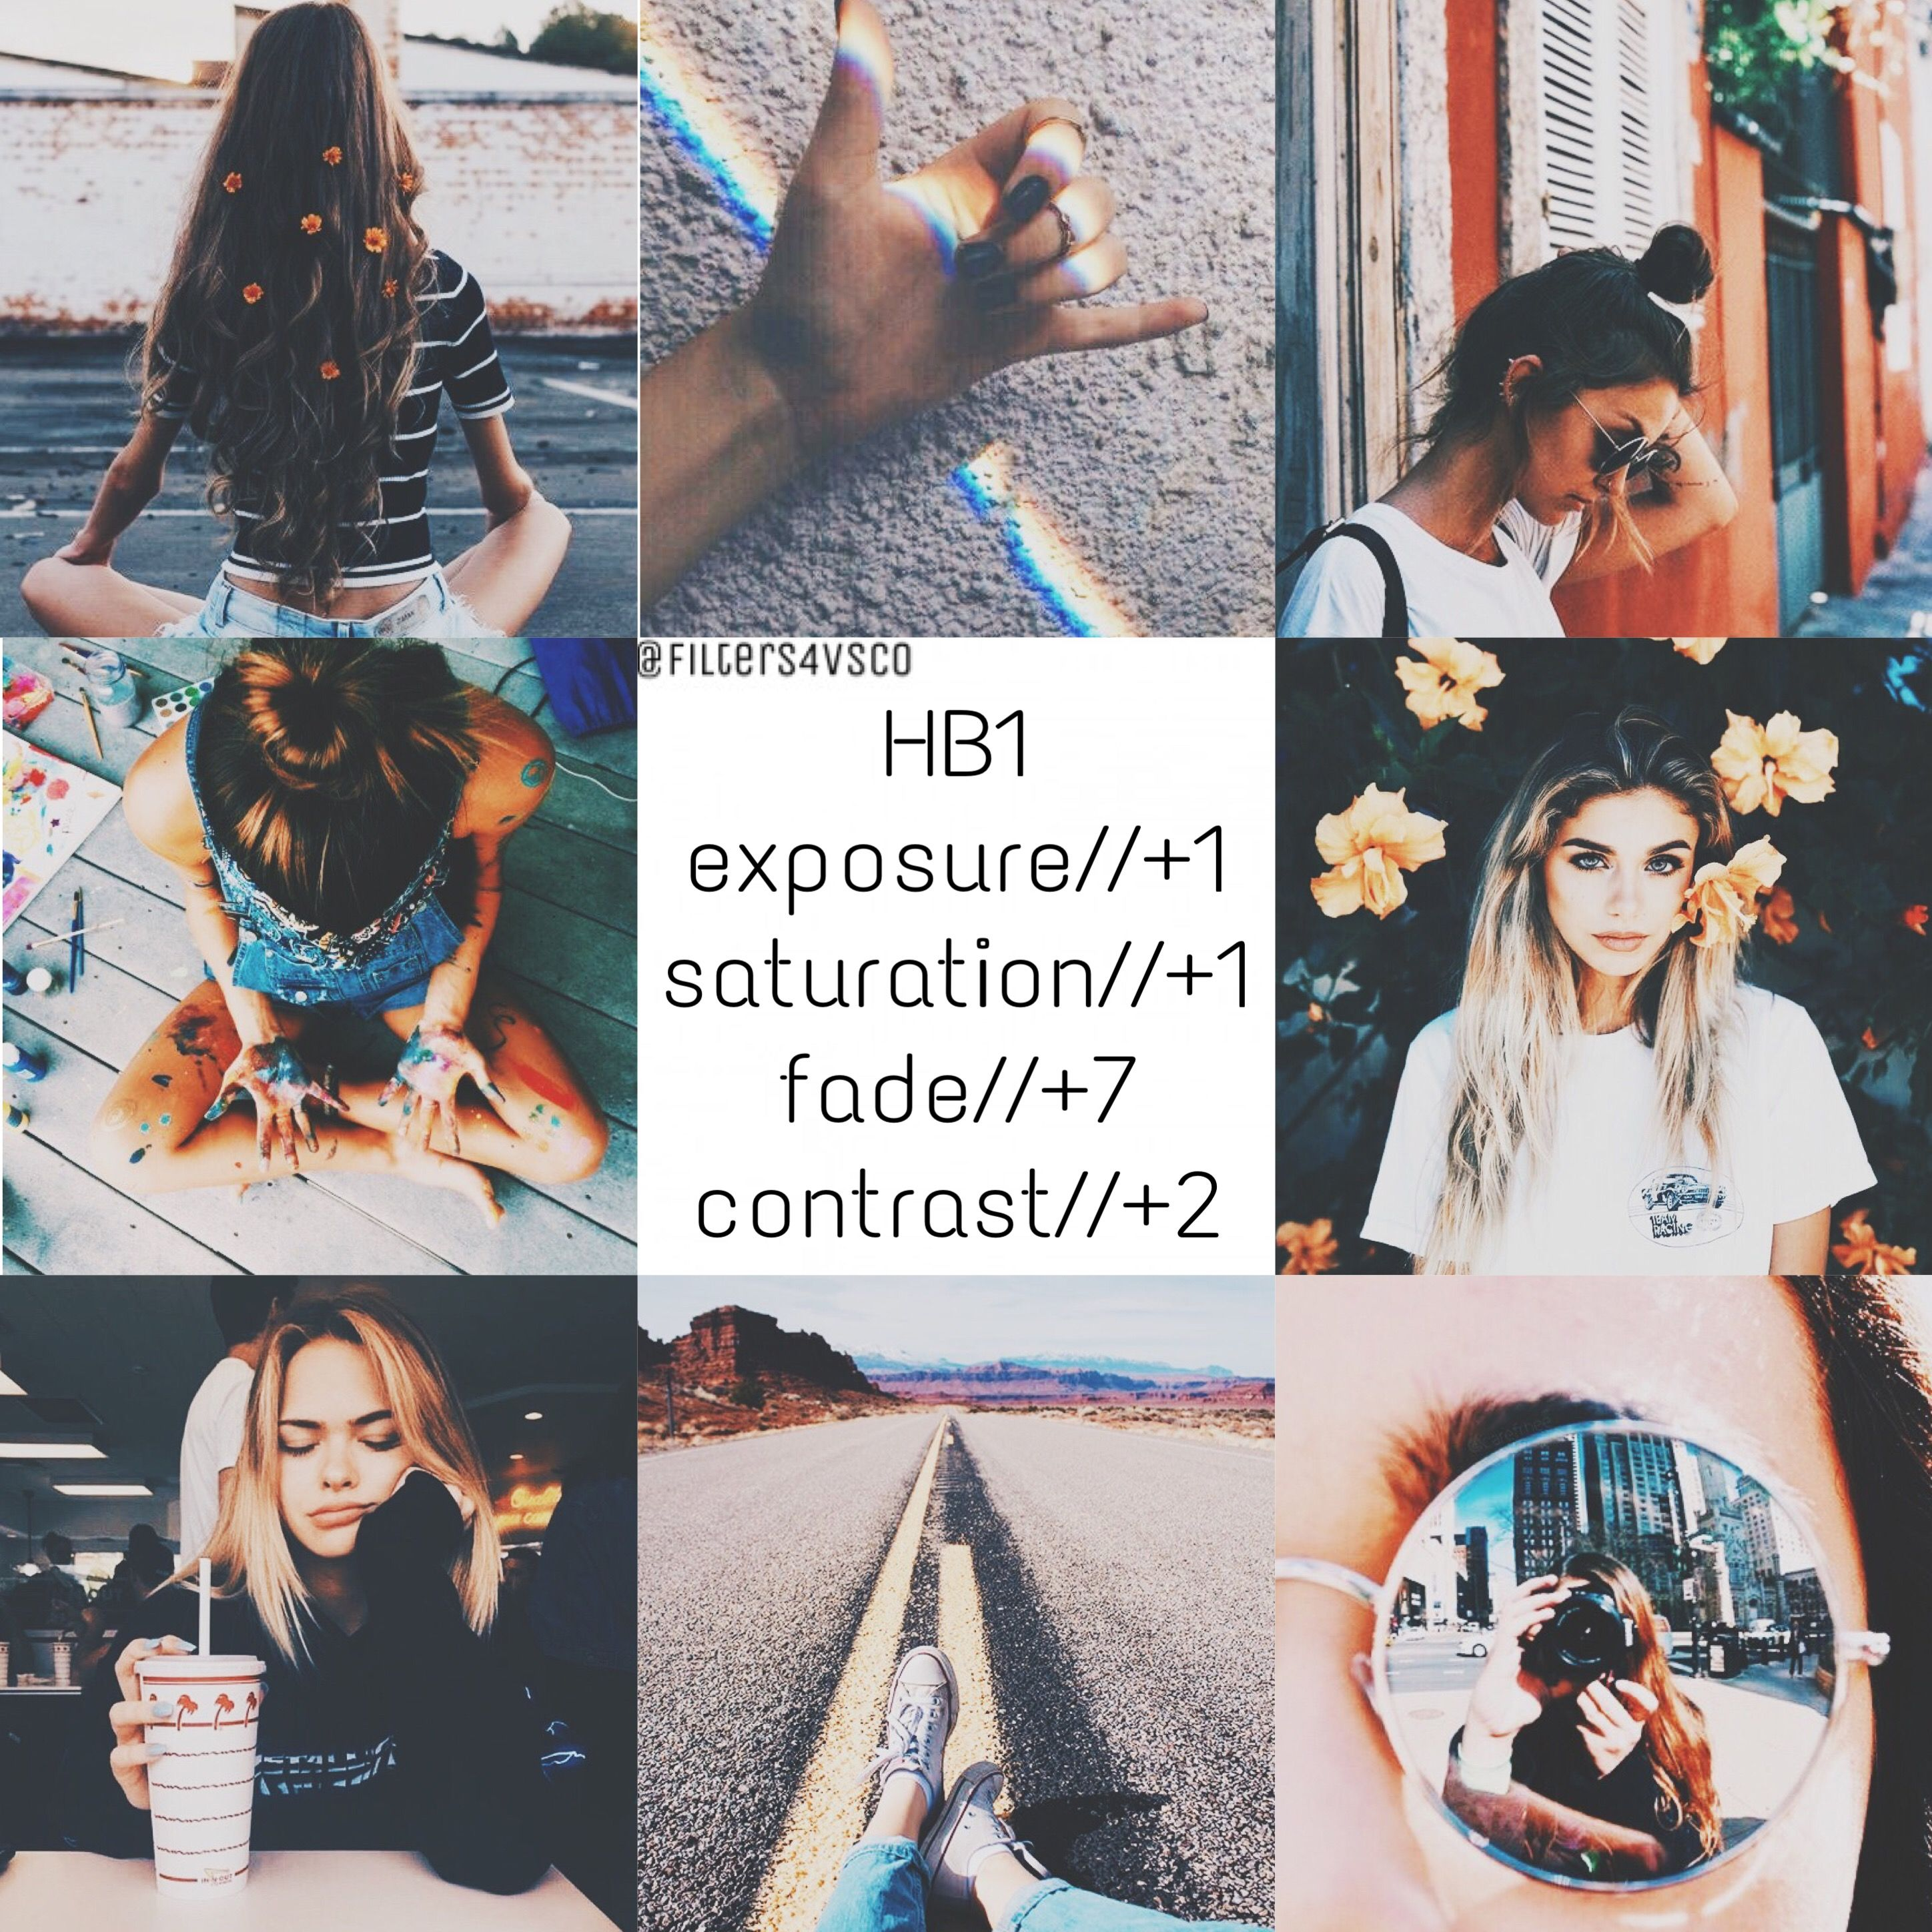 Pin By Diego Style On Photography Filters Feed Instagram Vsco Instagram Theme Feed Photo Editing Vsco